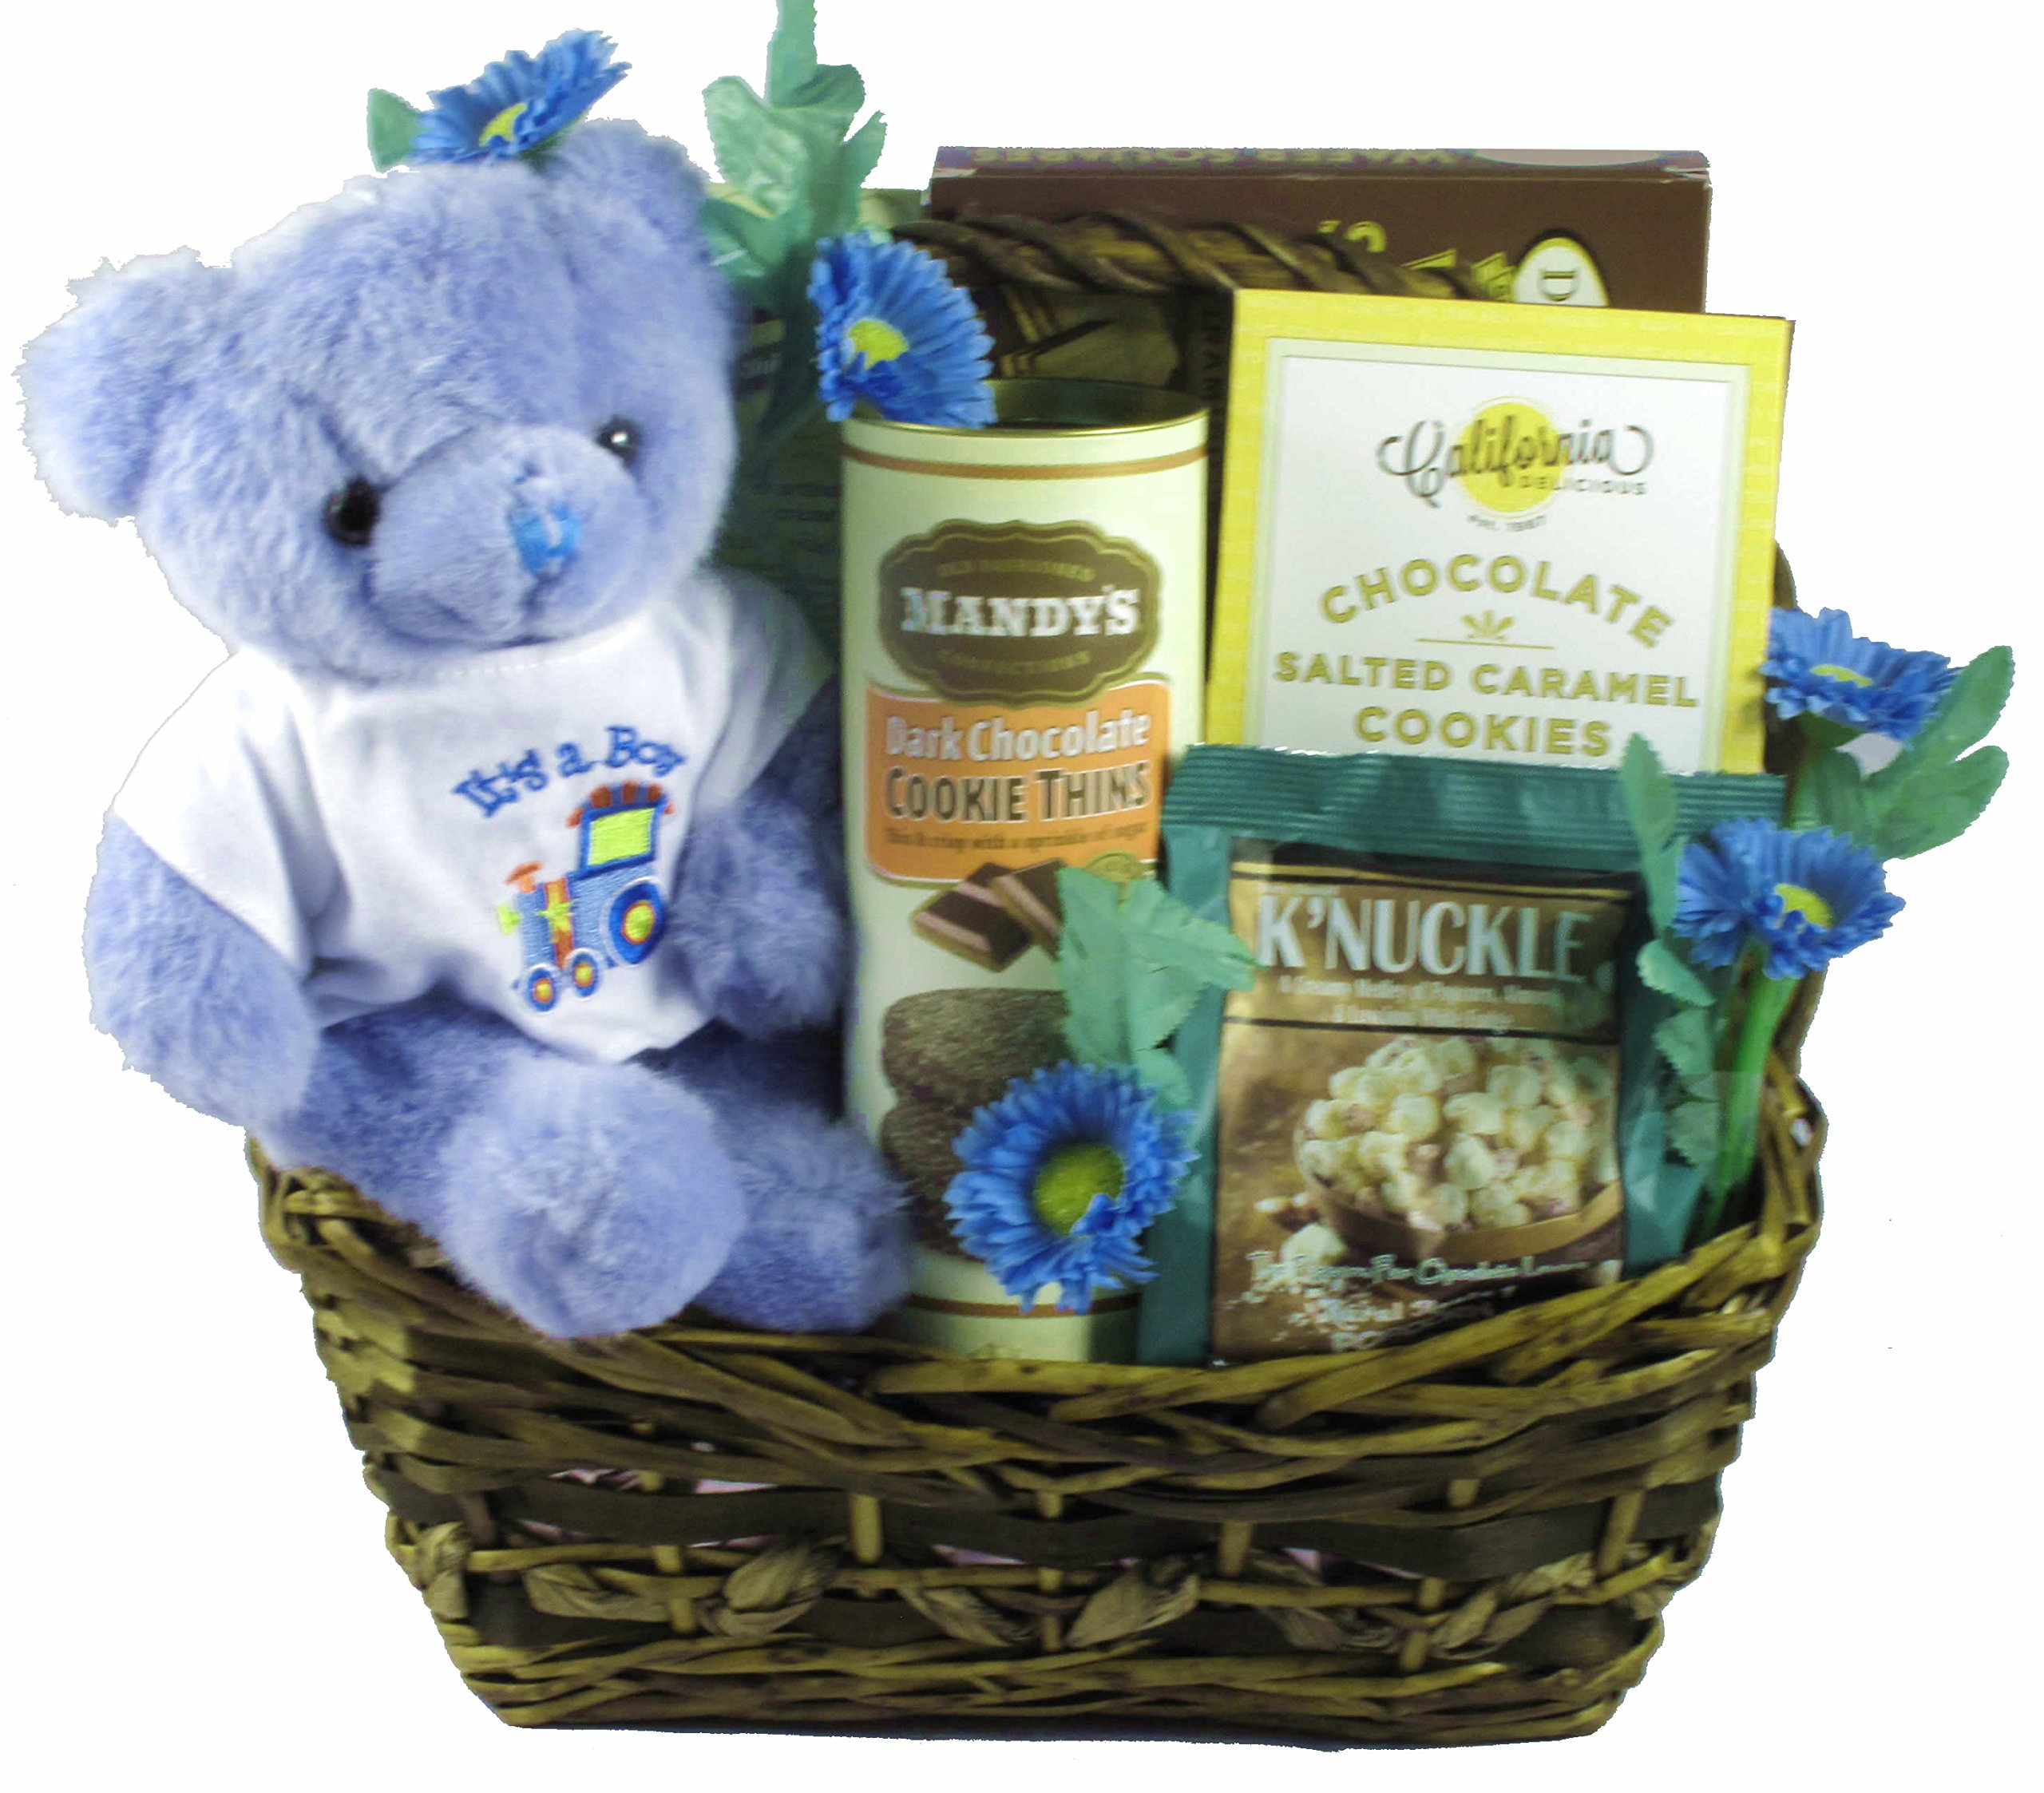 Proud Parents Gift Basket - A Gift Basket To Celebrate The Proud Parents Of A New Baby Boy